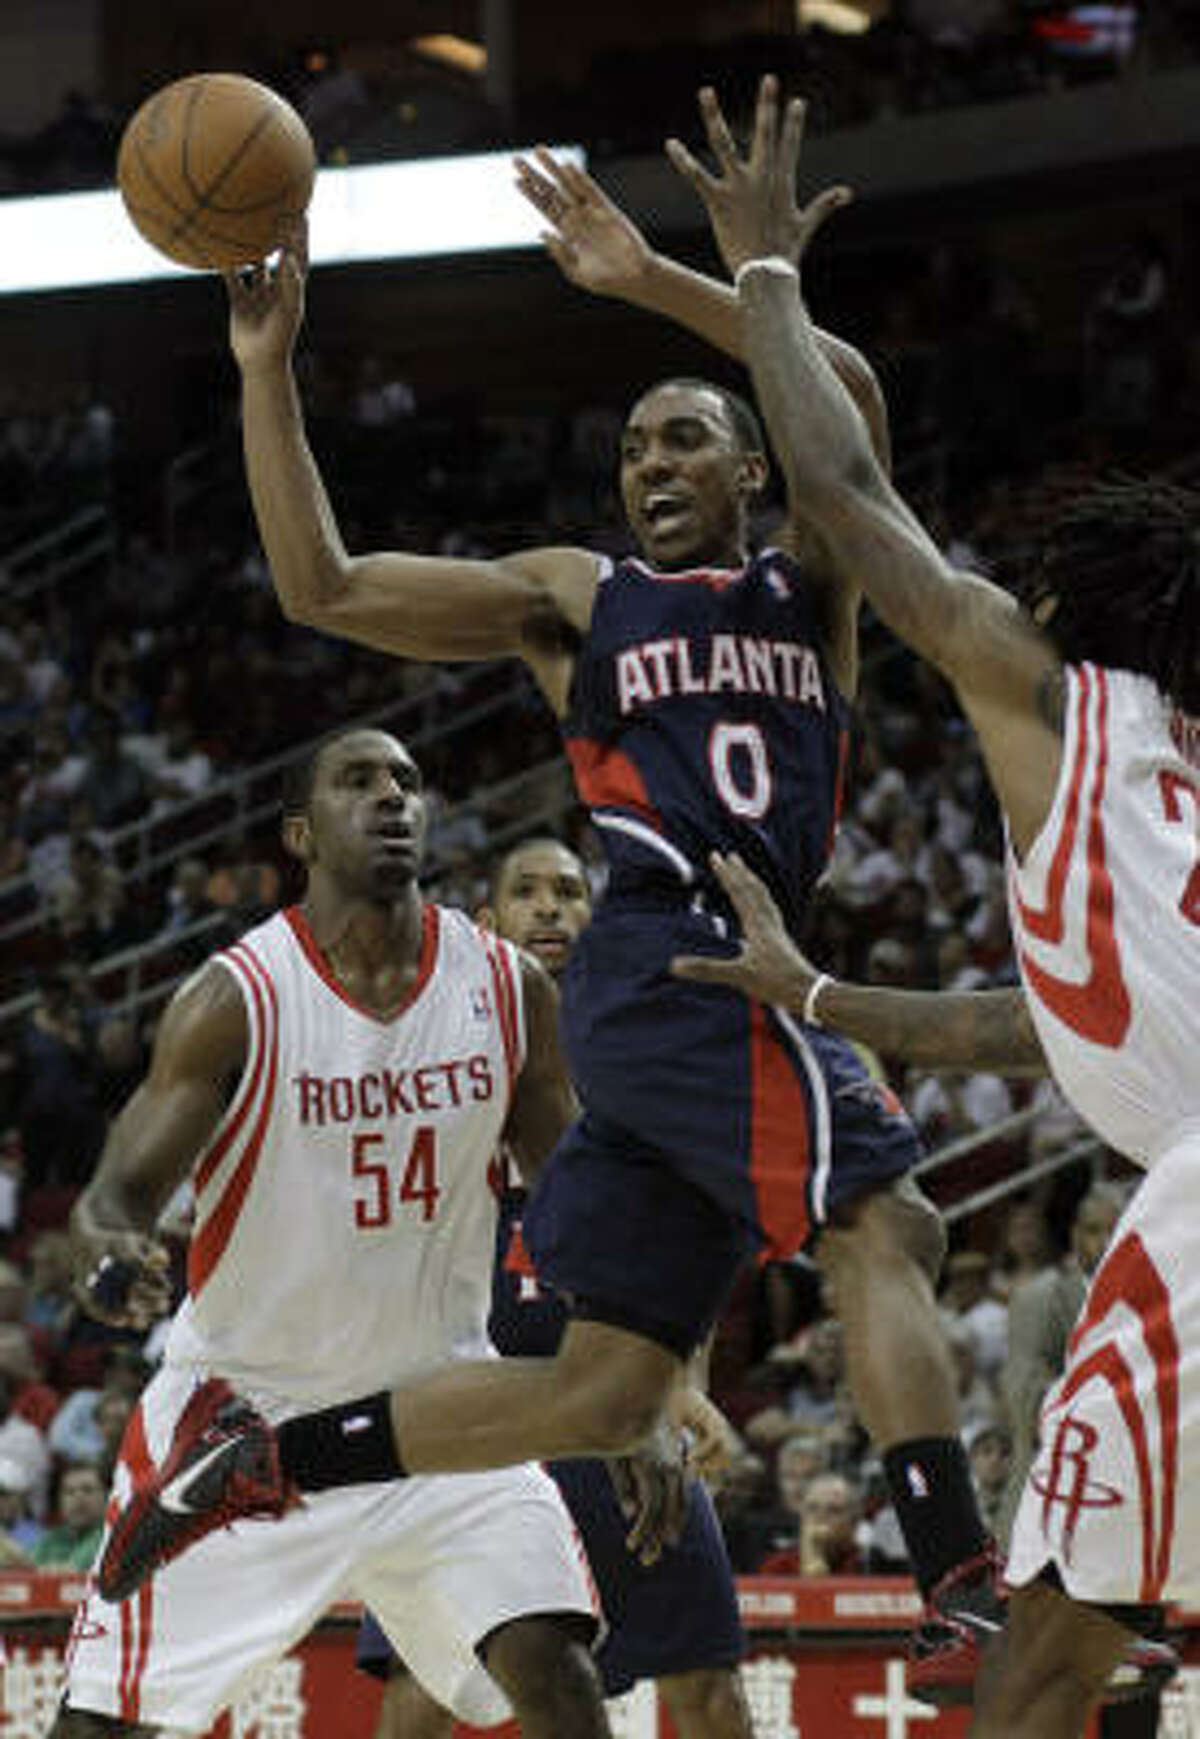 Hawks guard Jeff Teague (0) goes up between Rockets power forward Patrick Patterson (54) and forward Jordan Hill in the first half.